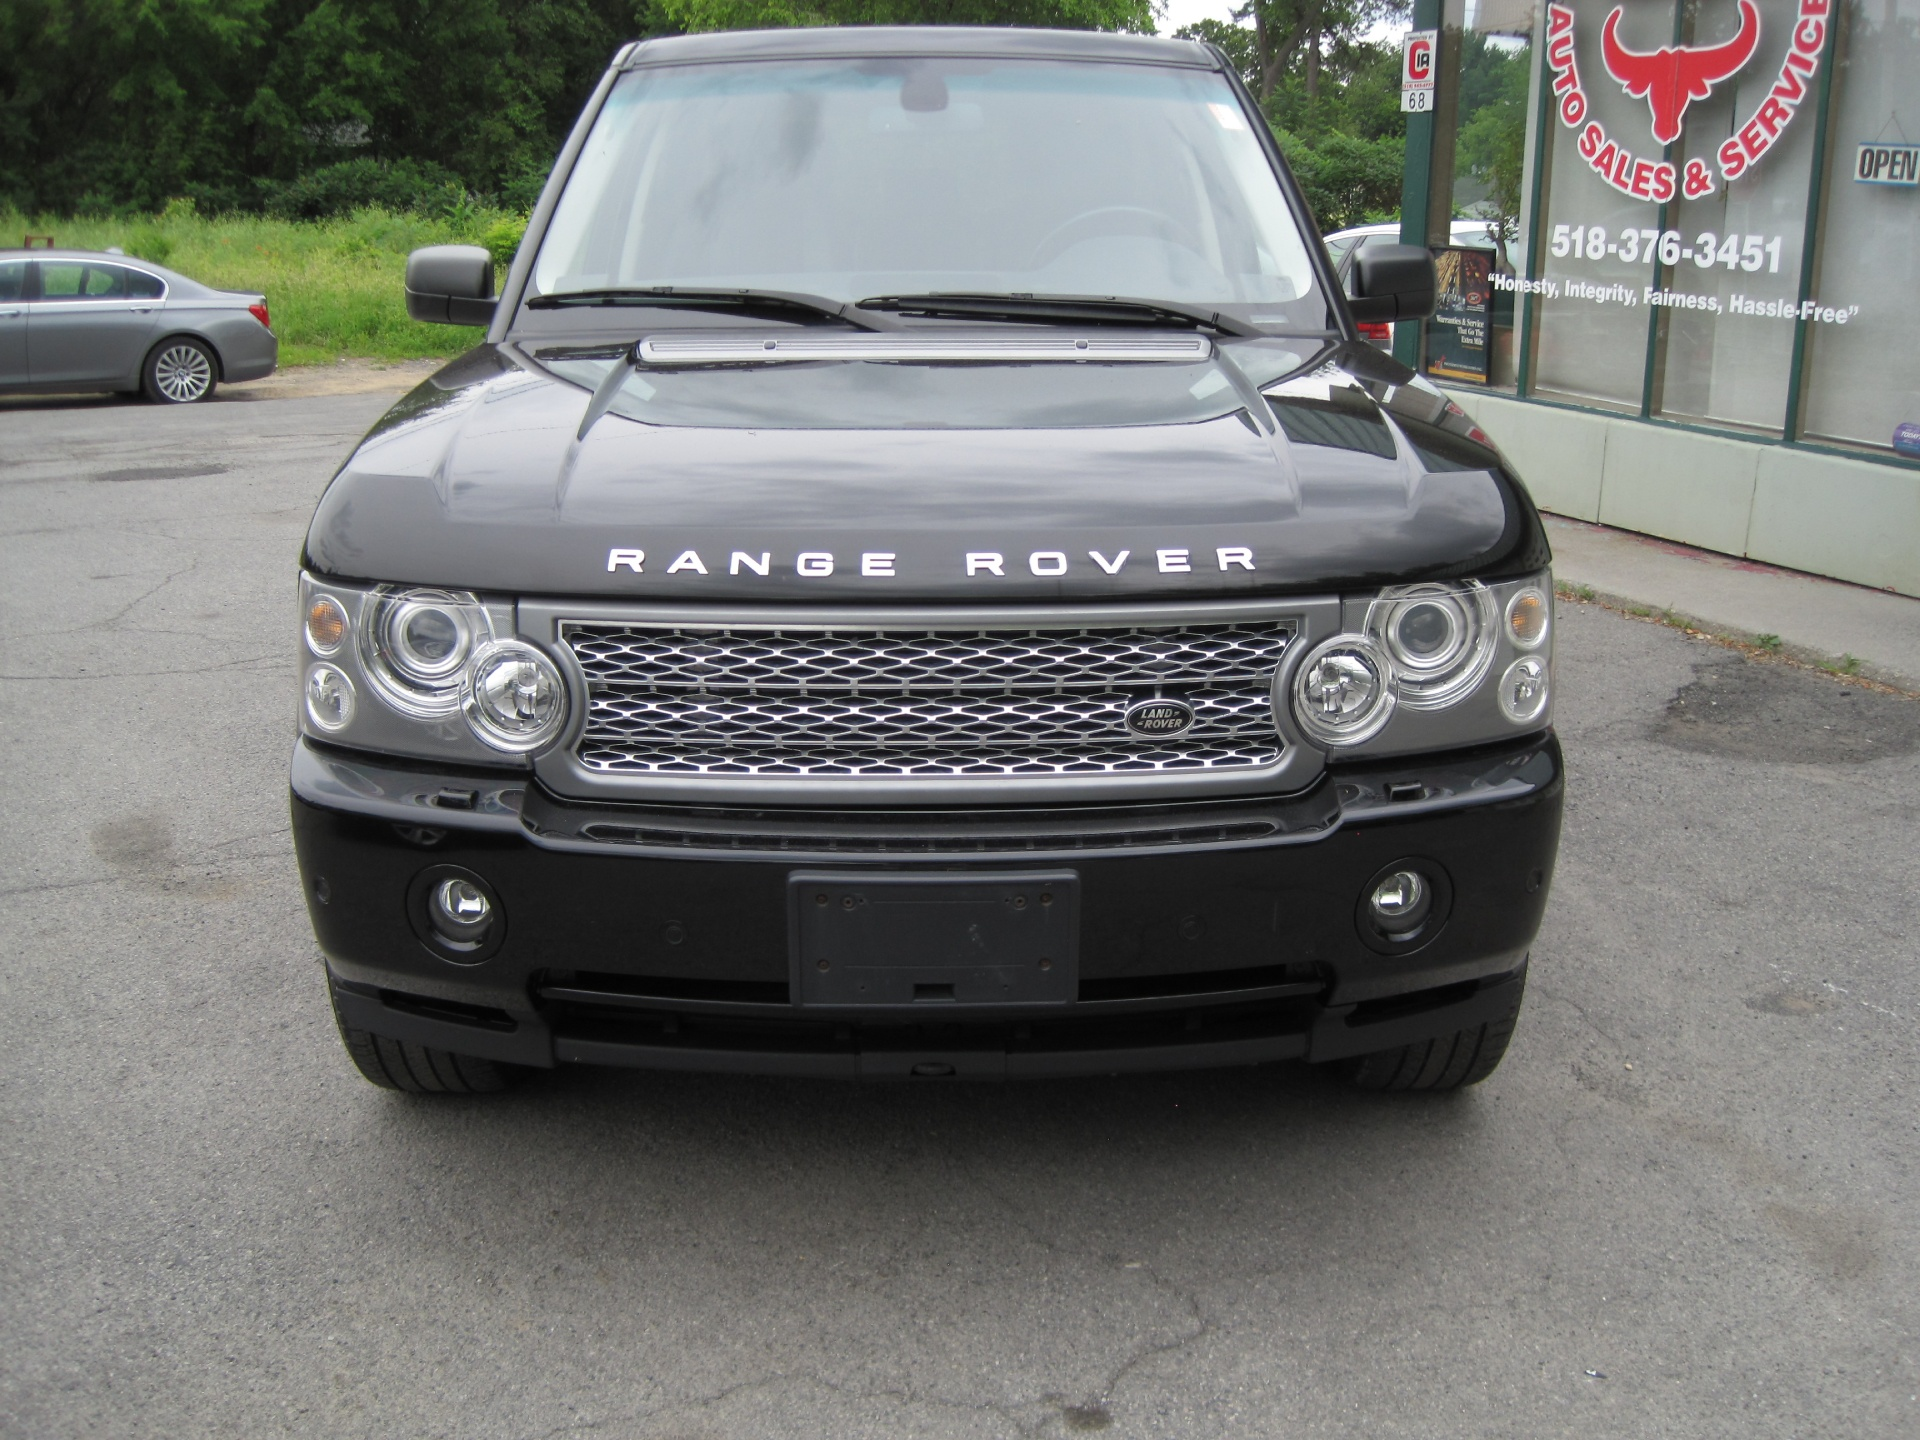 2009 land rover range rover supercharged stock 15085 for sale near albany ny ny land rover. Black Bedroom Furniture Sets. Home Design Ideas